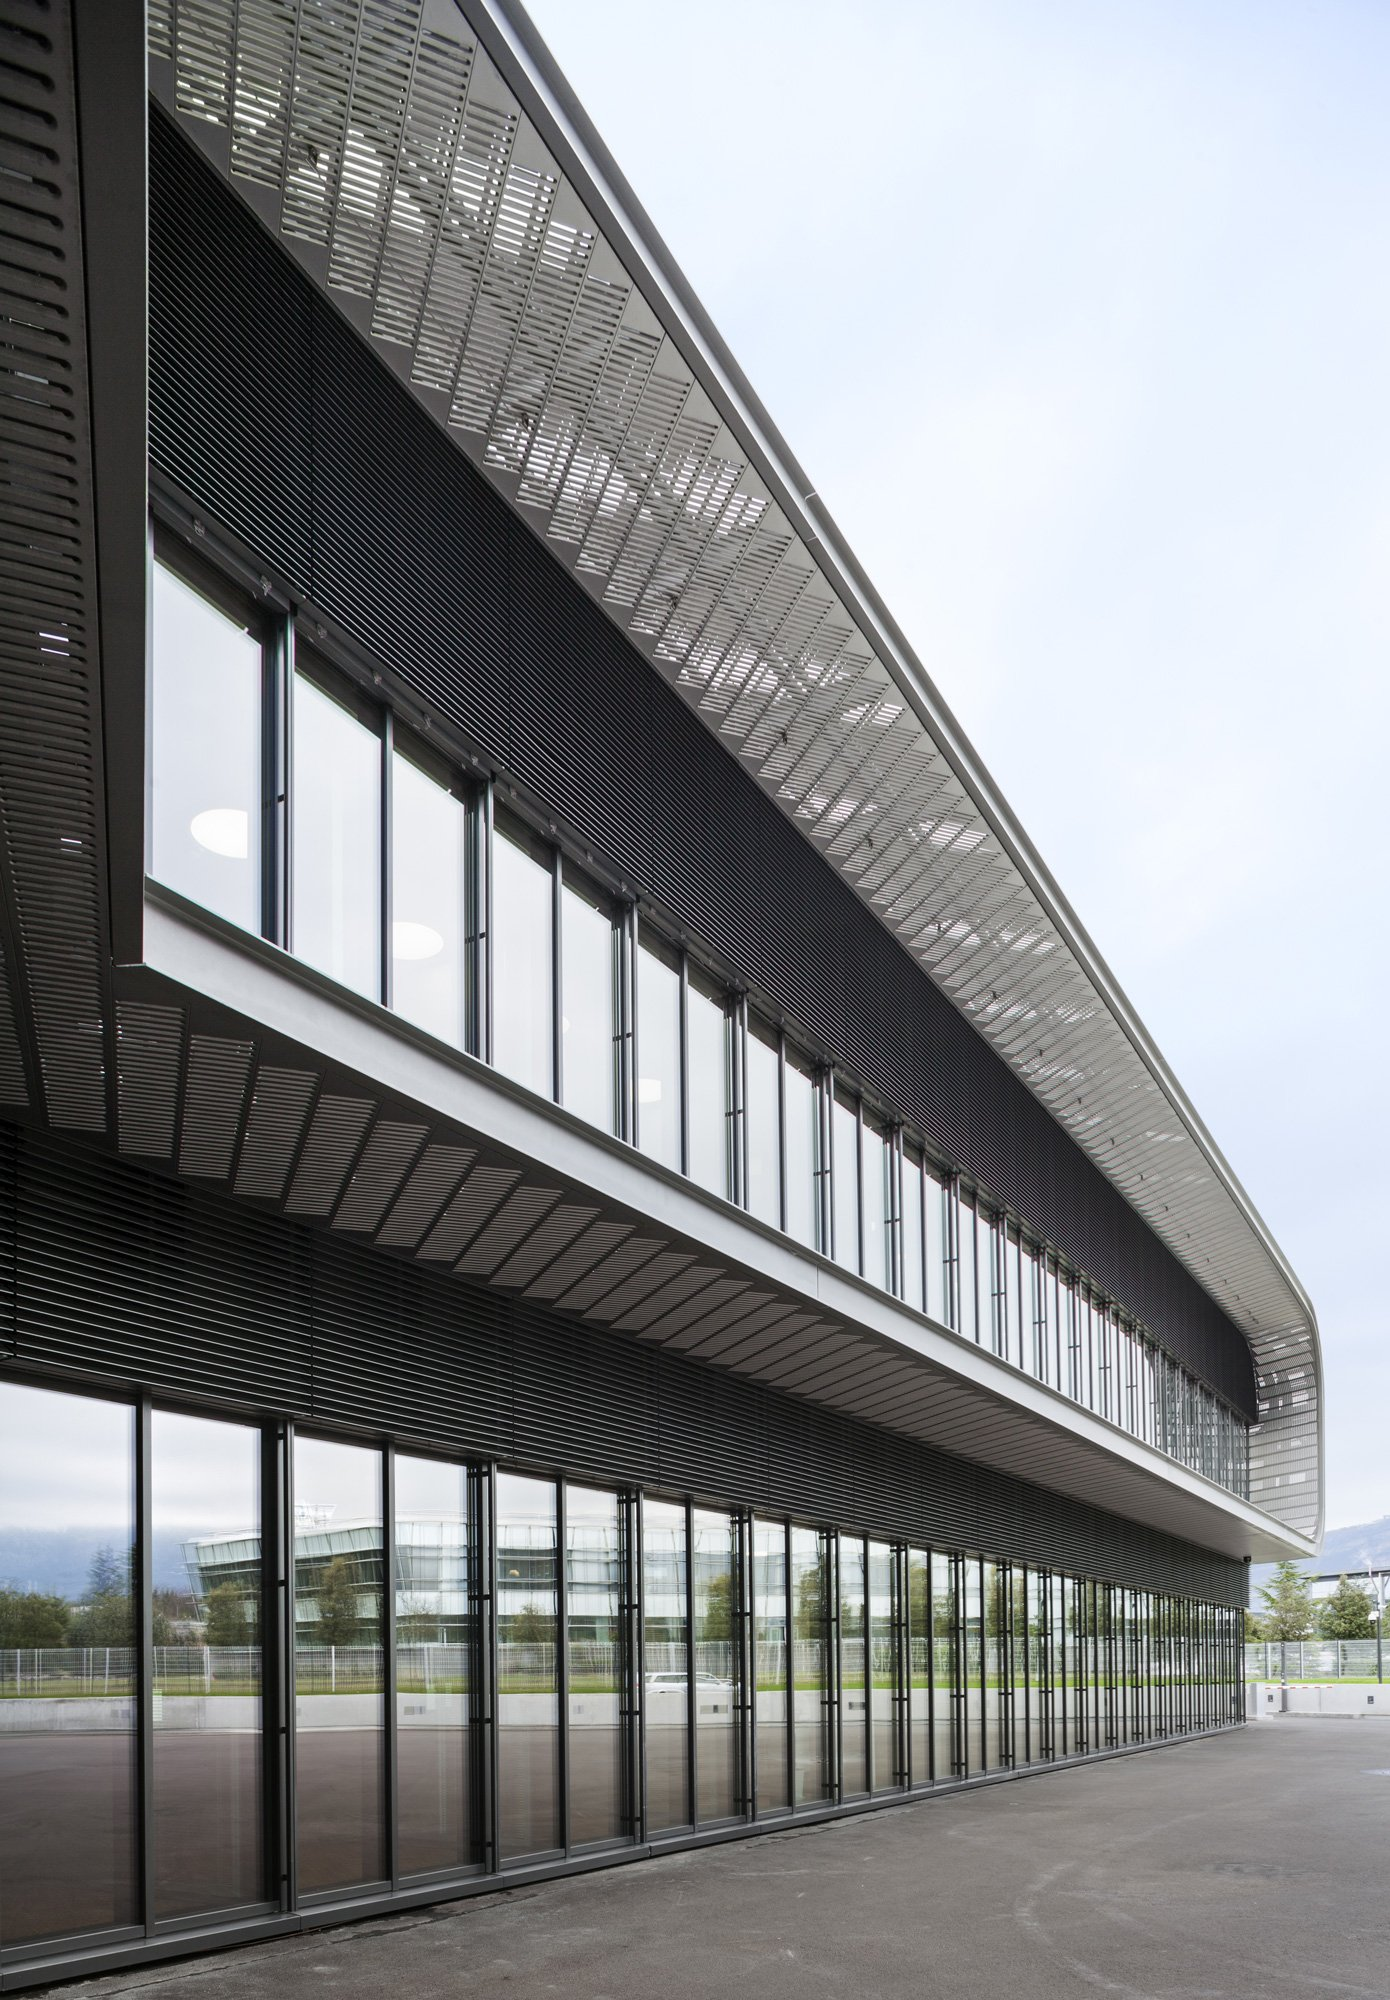 Vacheron Constantin Headquarters and Manufacturing Center